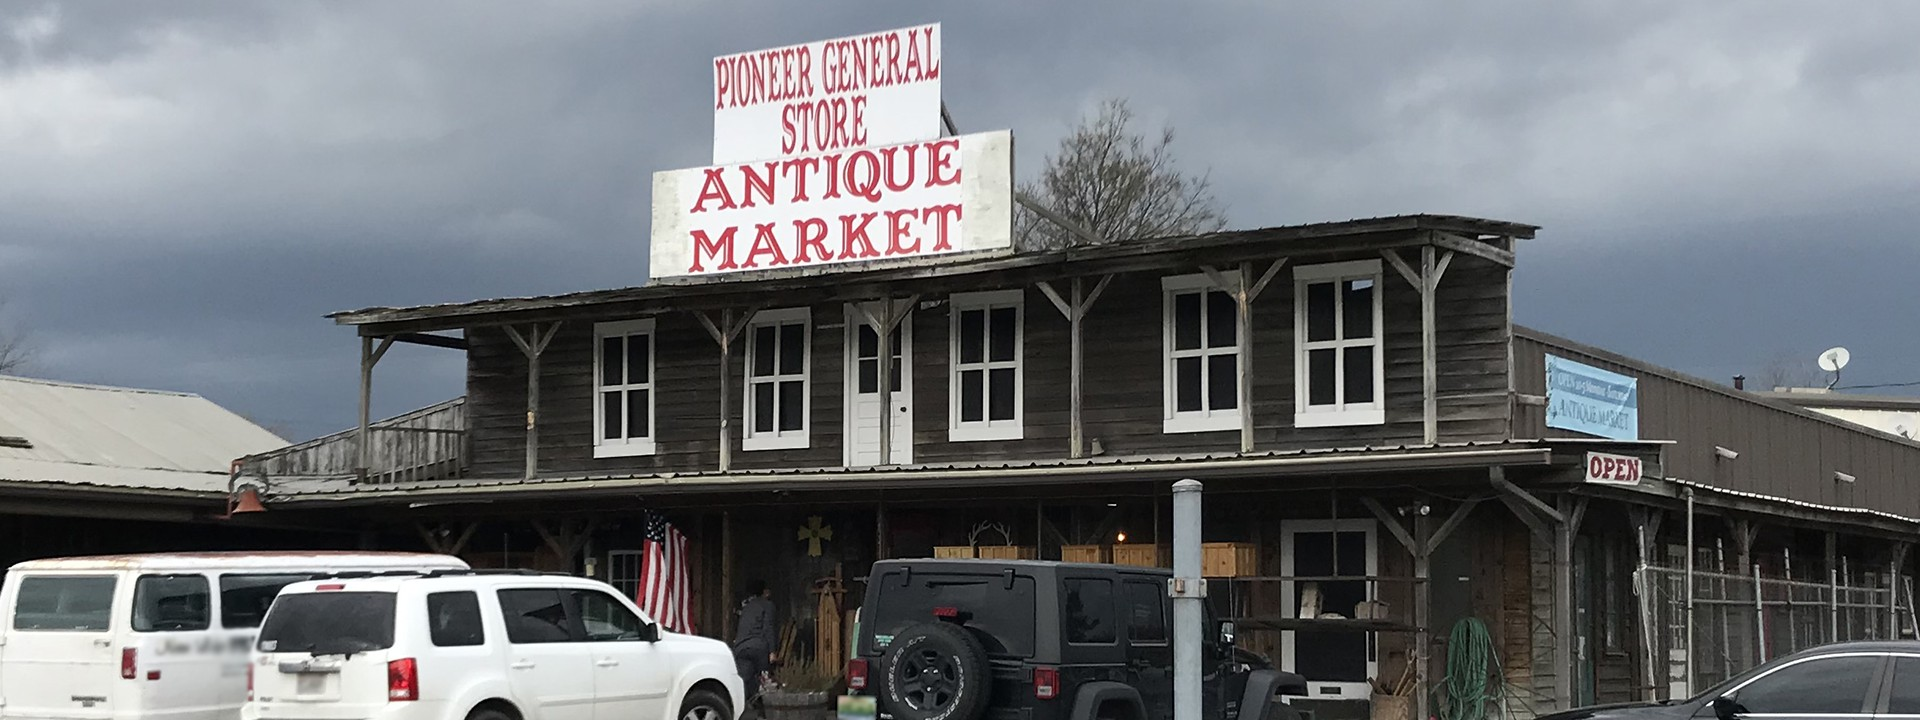 Pioneer General Store and Flea Market_1920x800